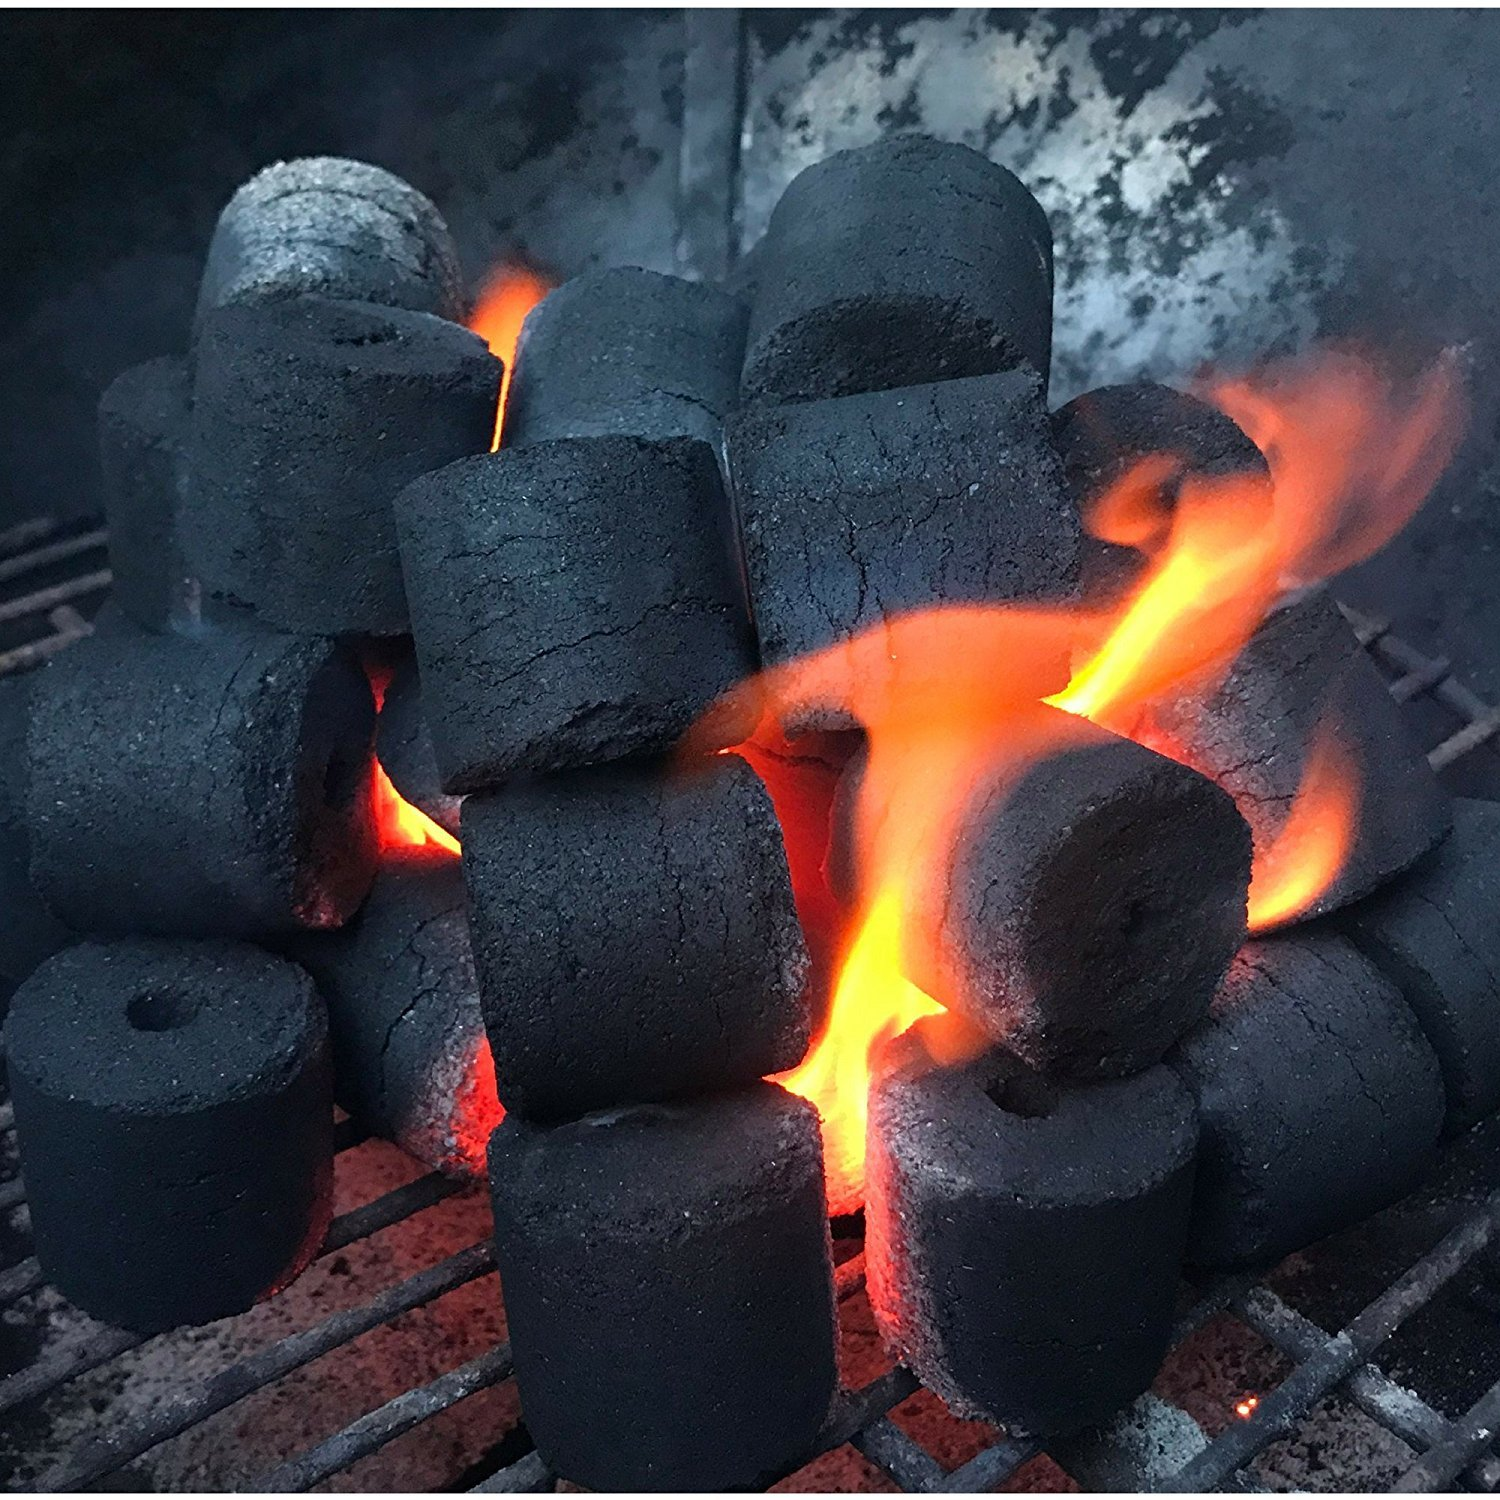 COCO-BBQ Eco-Friendly Barbecue (SET OF 6) Charcoal Made from Coconut Shells for Low and Slow Grilling by COCO-BBQ (Image #4)